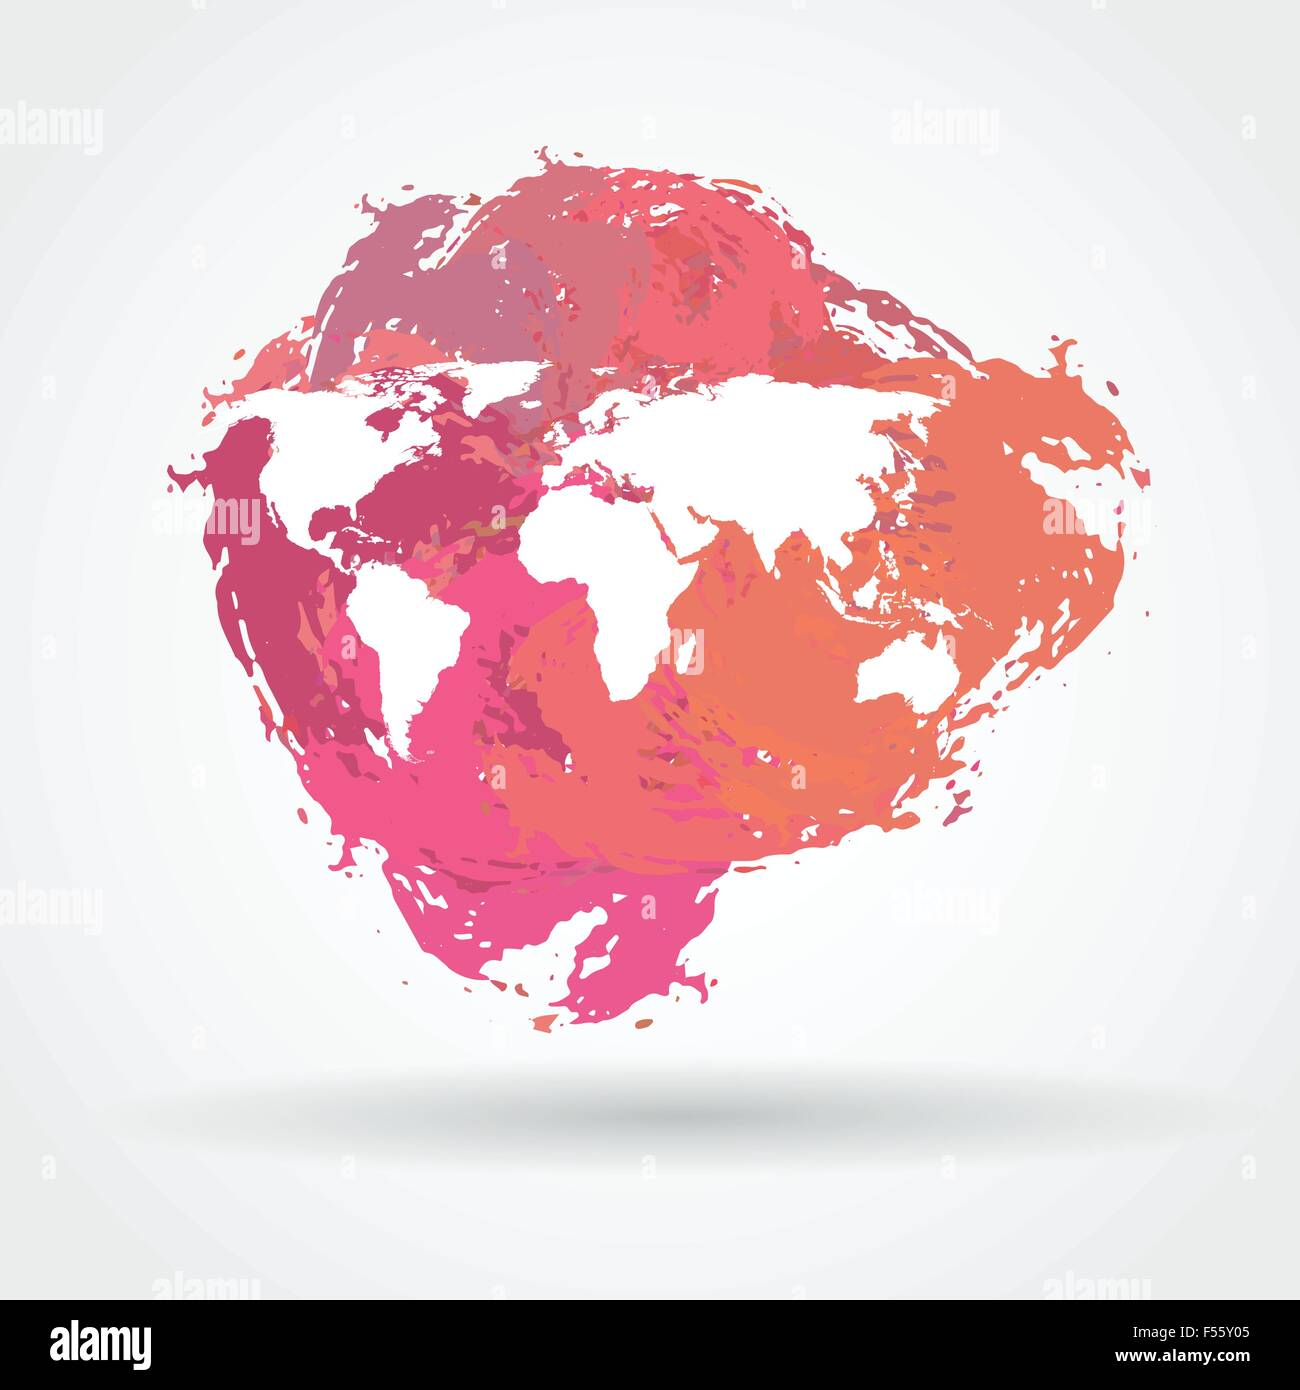 World map on a stain - Stock Image